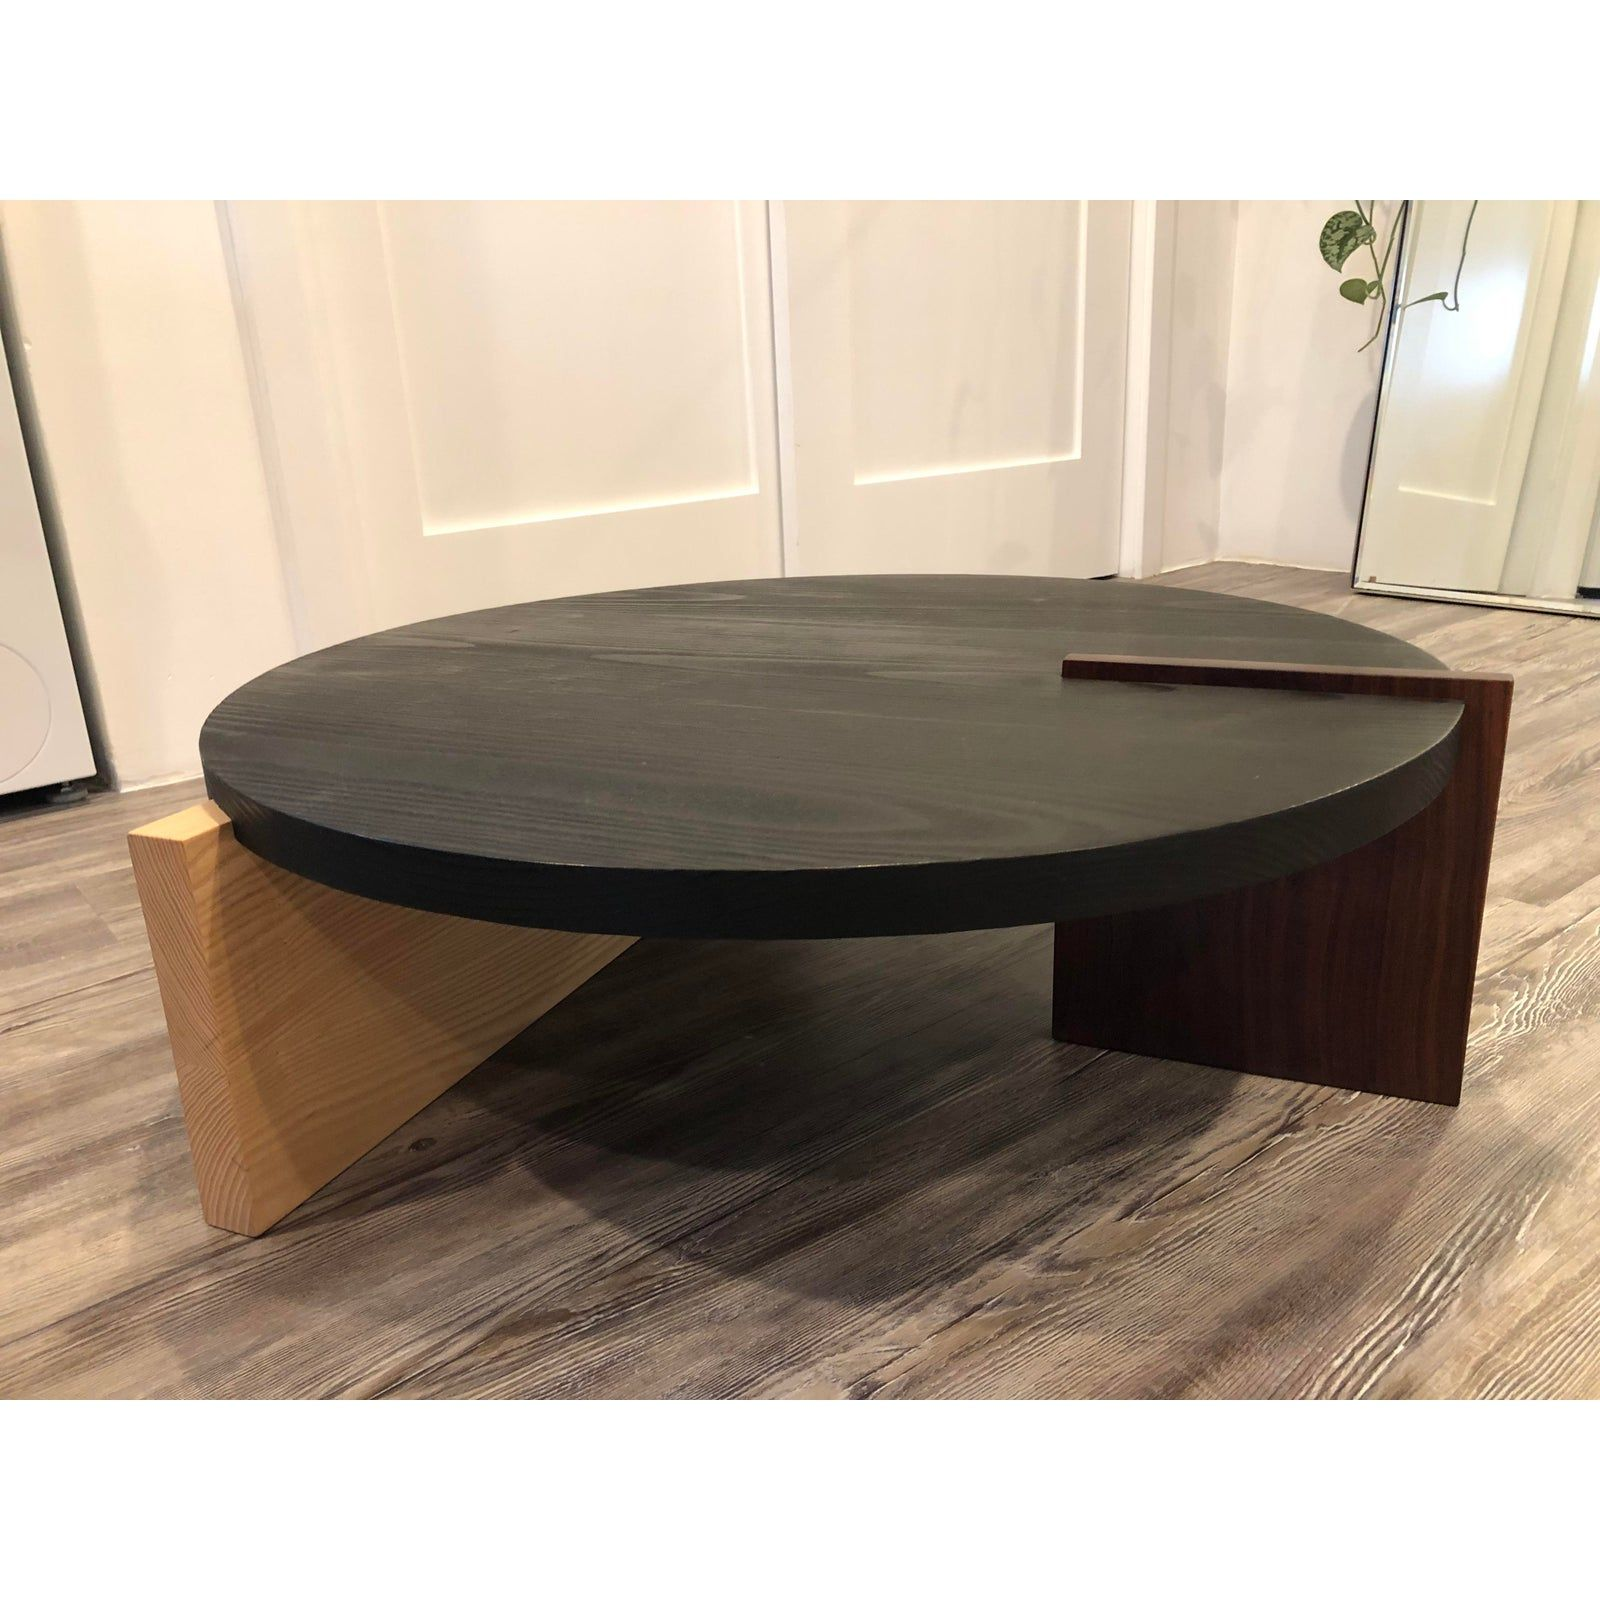 Contemporary Grain Design Round Wood Coffee Table Chairish Coffee Table Round Wood Coffee Table Table [ 1600 x 1600 Pixel ]